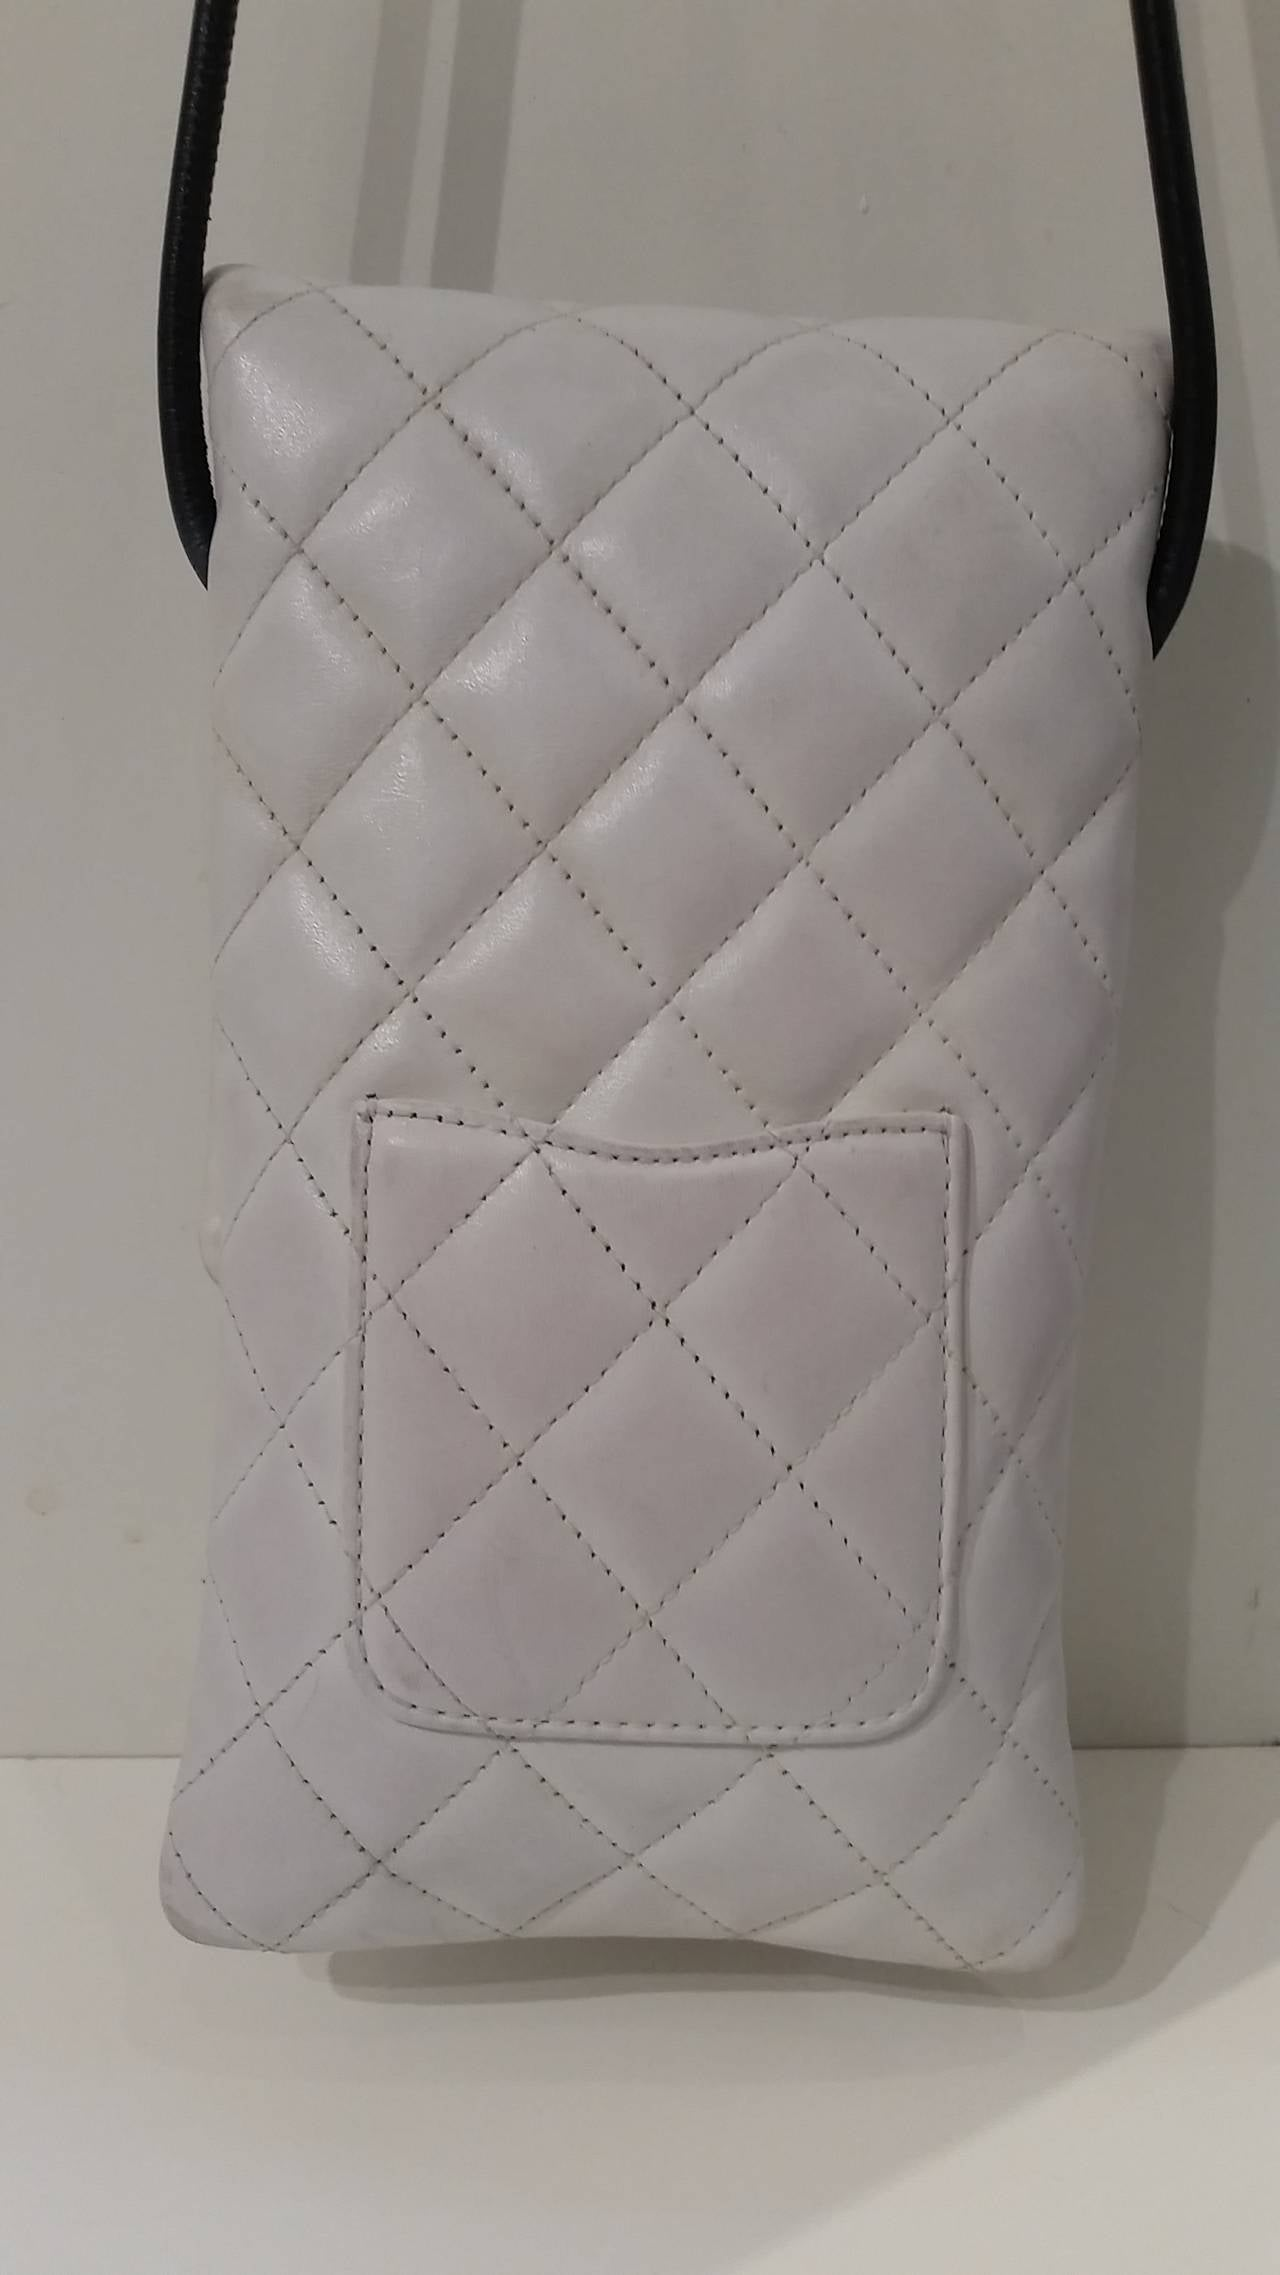 2004 Chanel white cambon shoulder bag with CC Python skin In Good Condition For Sale In Capri, IT